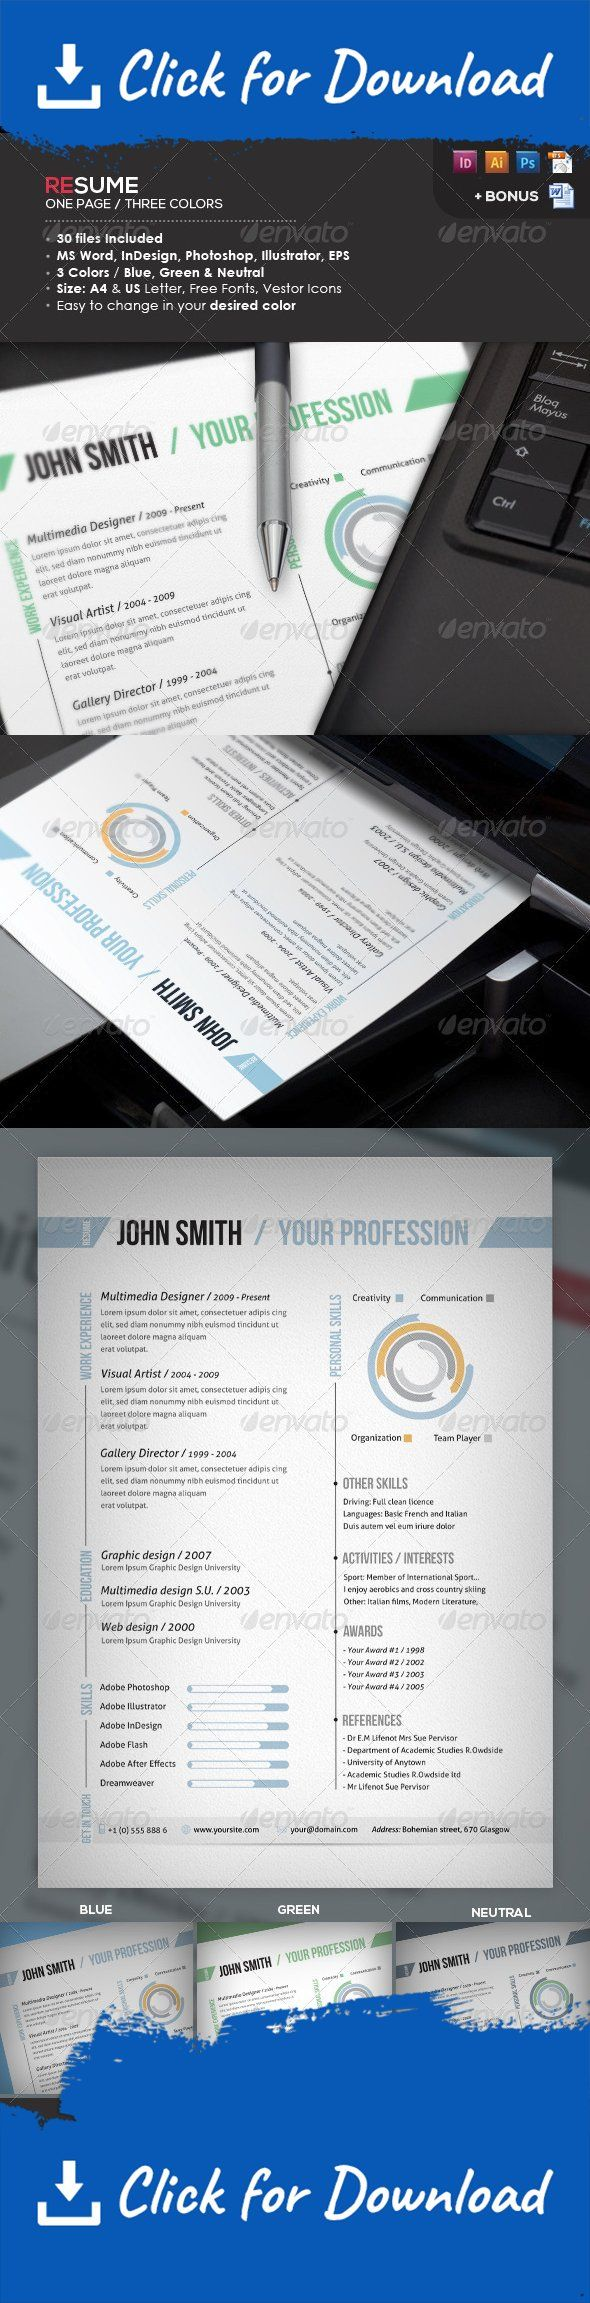 monster resume format%0A Ready One Page Resume   CV